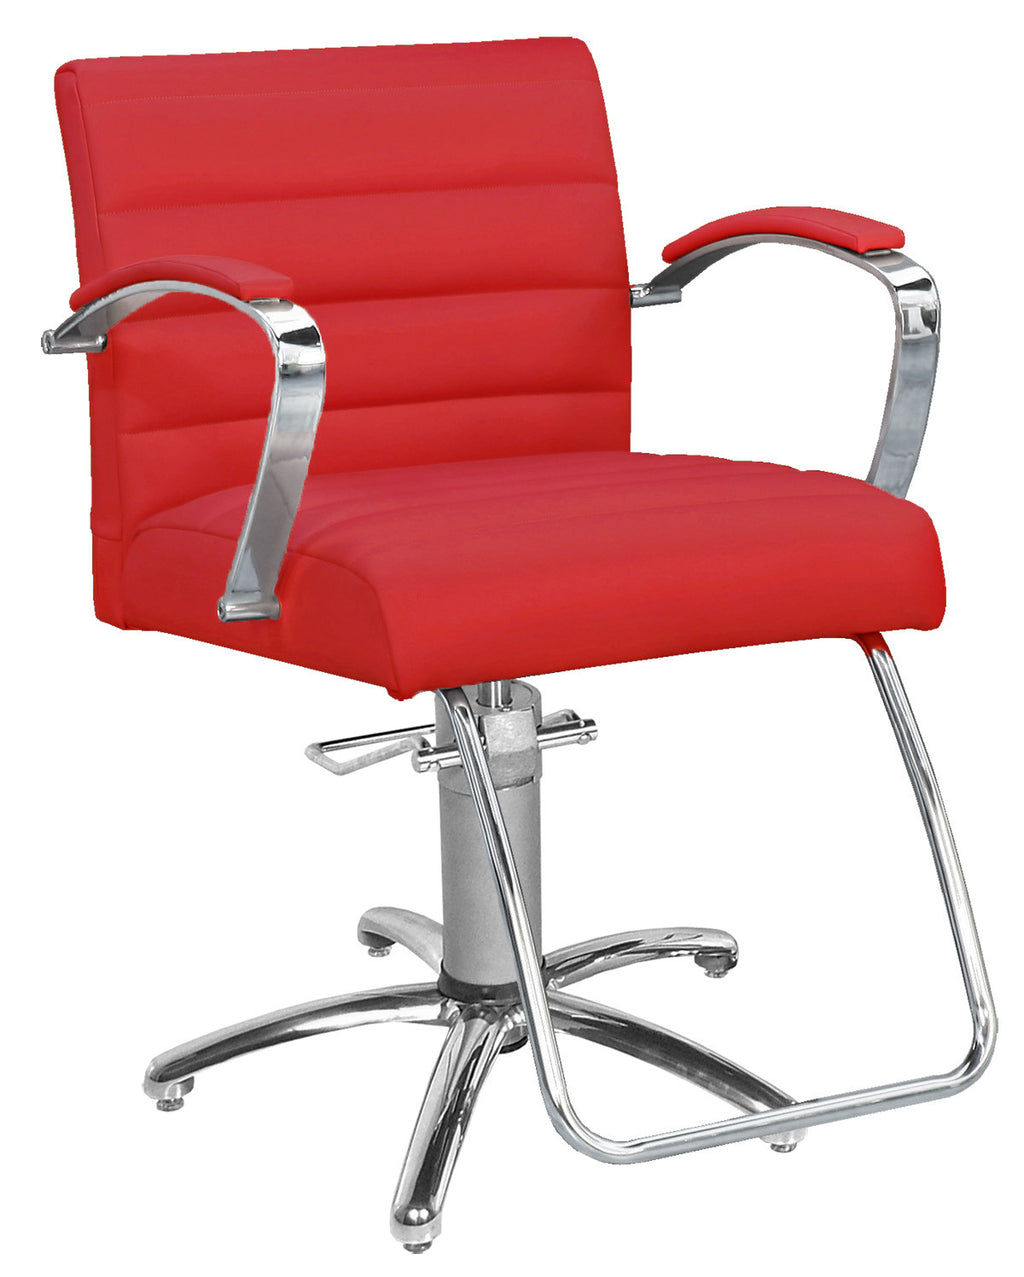 Fusion Styling chair by Collins